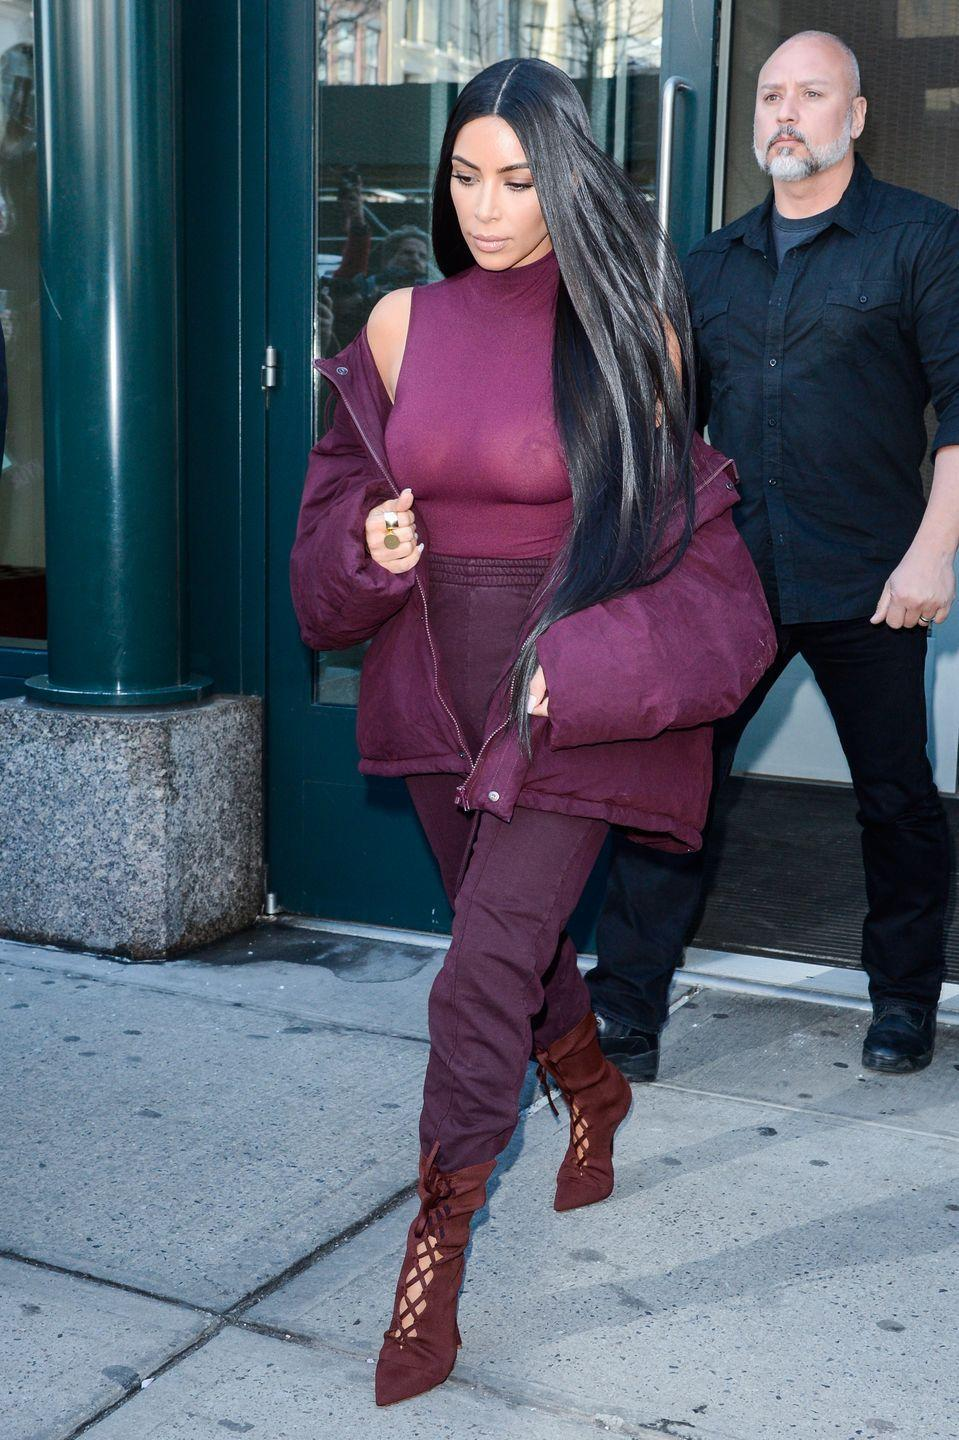 <p>You don't have to show your nips for this one – unless you want to, then do you – but Kim's all burgundy look is one to copy. If you're not into burgundy, go for a groutfit, an all-white look, or a black-on-black-on-black fit. It basically works with any color as long as each item is a slightly different hue. </p>